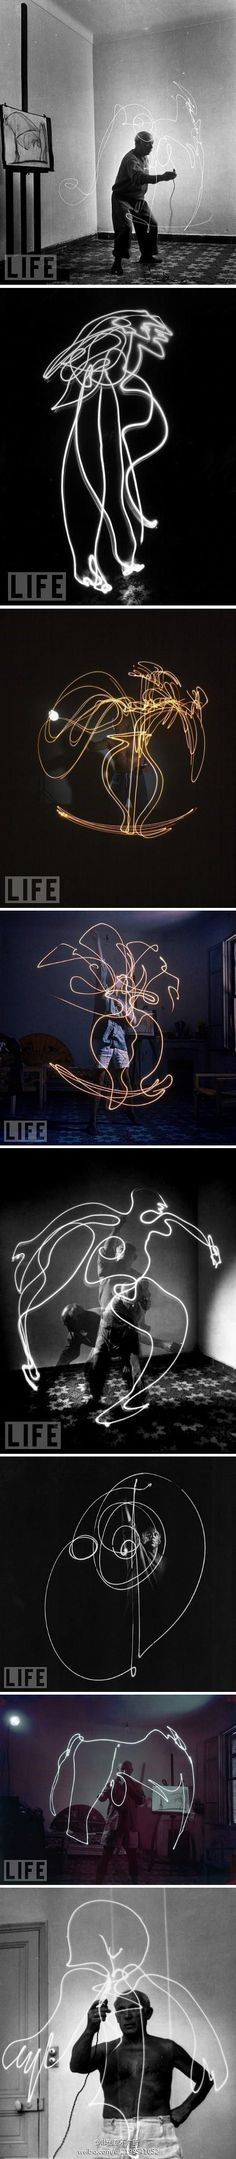 """In 1949, LIFE photographer Gjon Mili visited Picasso in Vallauris, France. He showed Pablo some photographs of ice skaters with tiny lights affixed to their skates jumping in the dark. Picasso was immediately inspired, these photos were the result."""